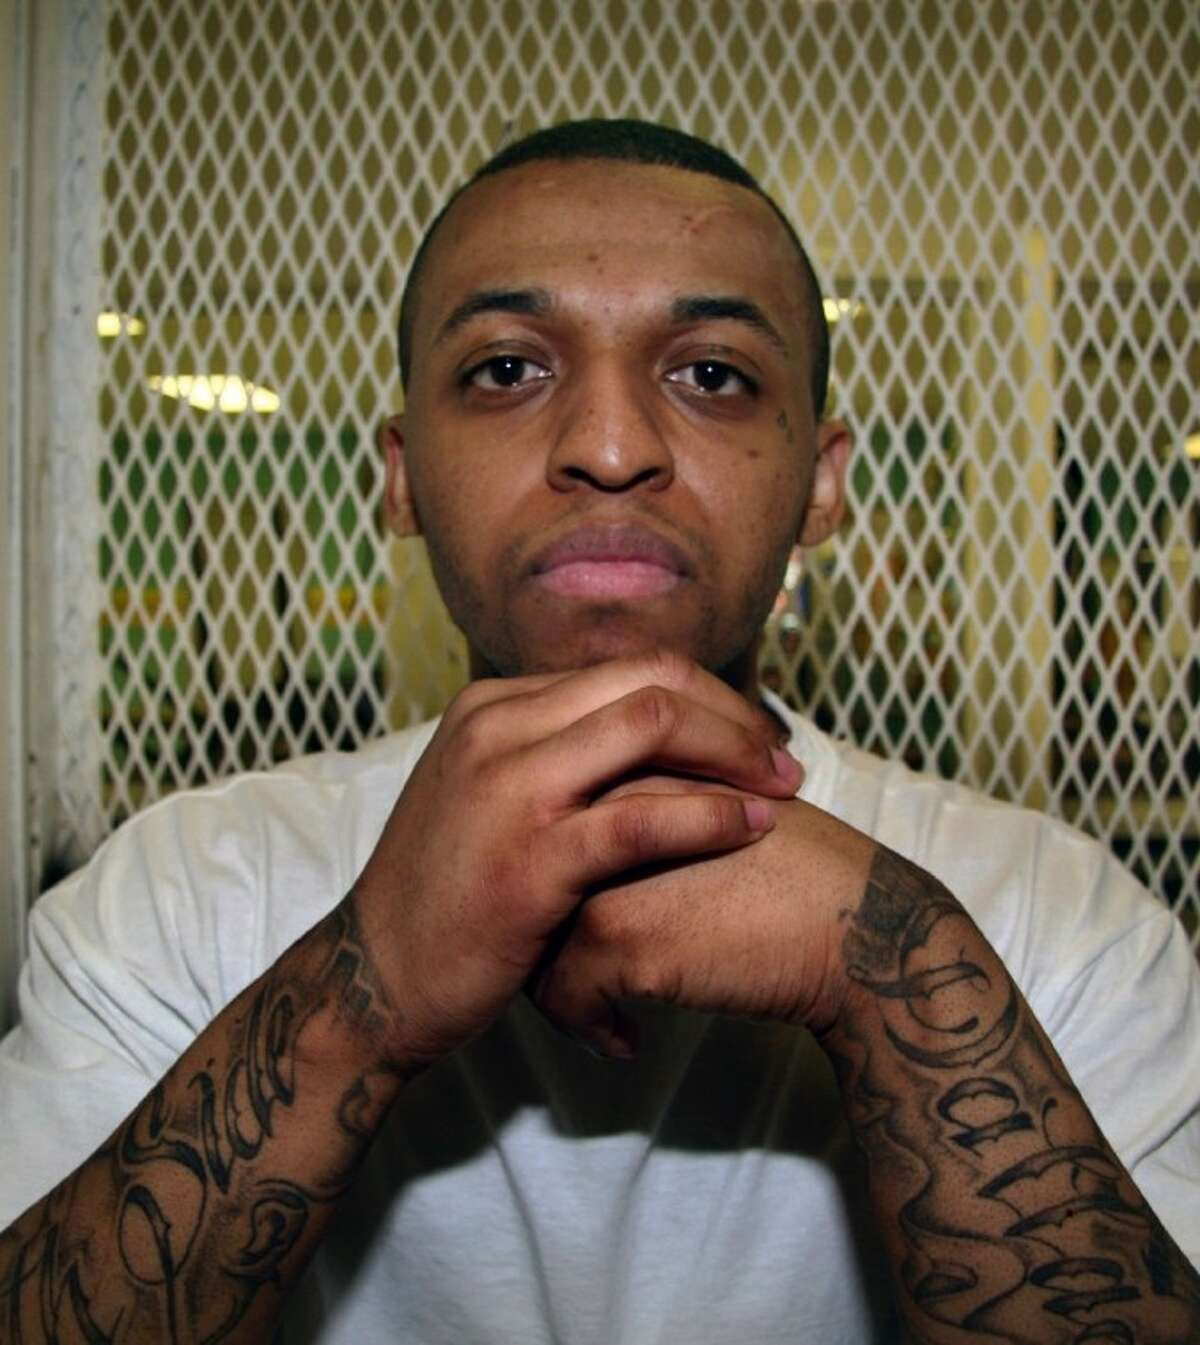 In this Dec. 5, 2012, photo, Texas death row inmate Steven Lawayne Nelson poses for a photo in a visiting cage at the Texas Department of Criminal Justice Polunsky Unit outside Livingston, Texas. Nelson, 25, was convicted of capital murder in mid-October and sent to death row for the 2011 slaying of an Arlington pastor during a robbery.